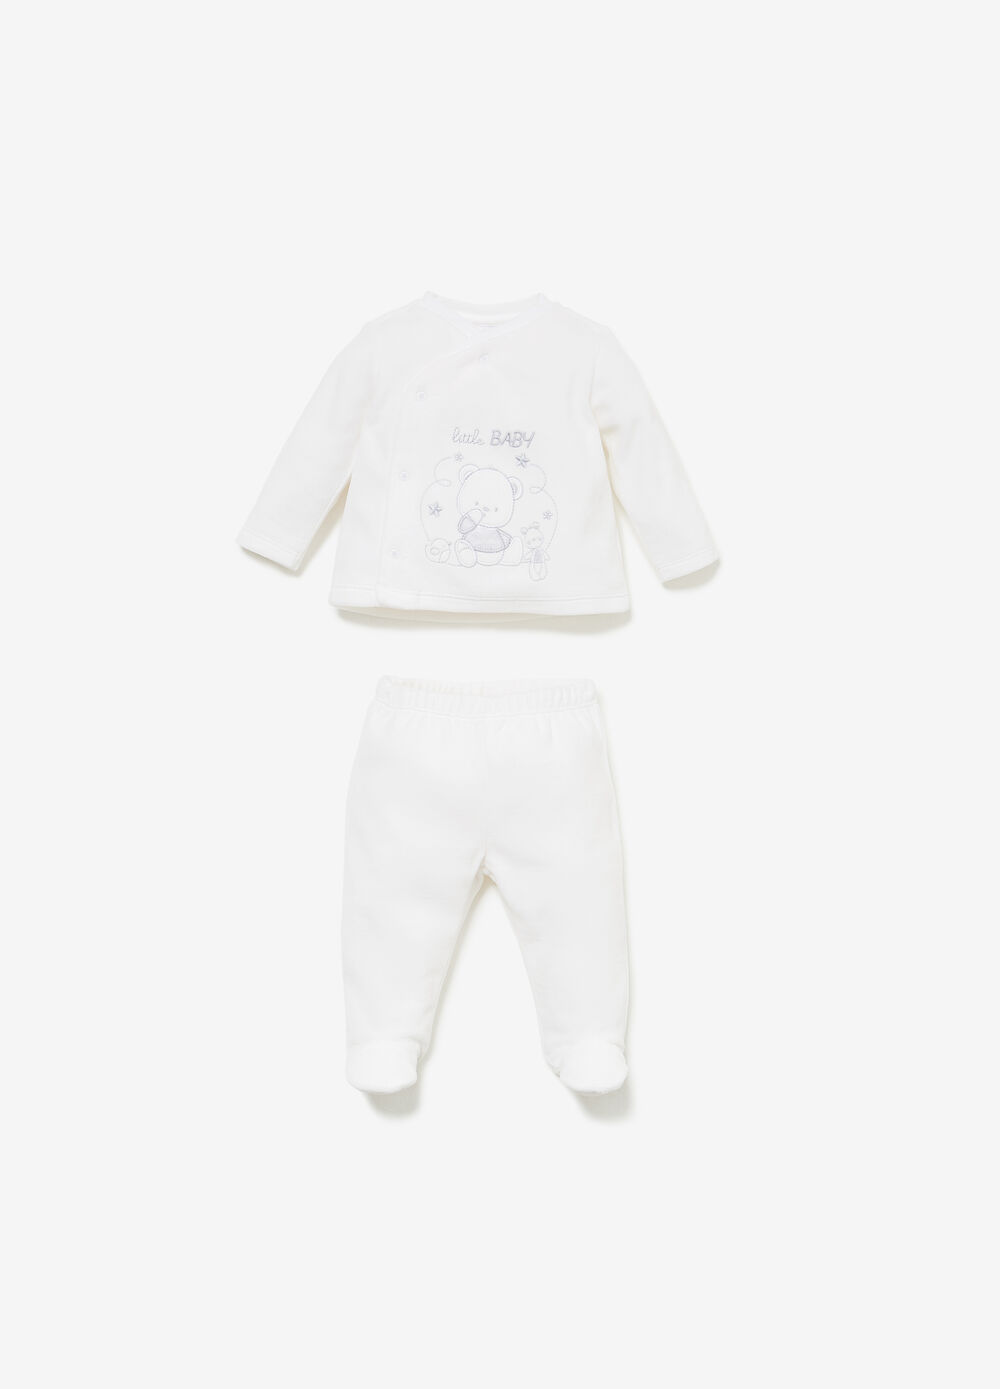 T-shirt and baby leggings set with embroidery